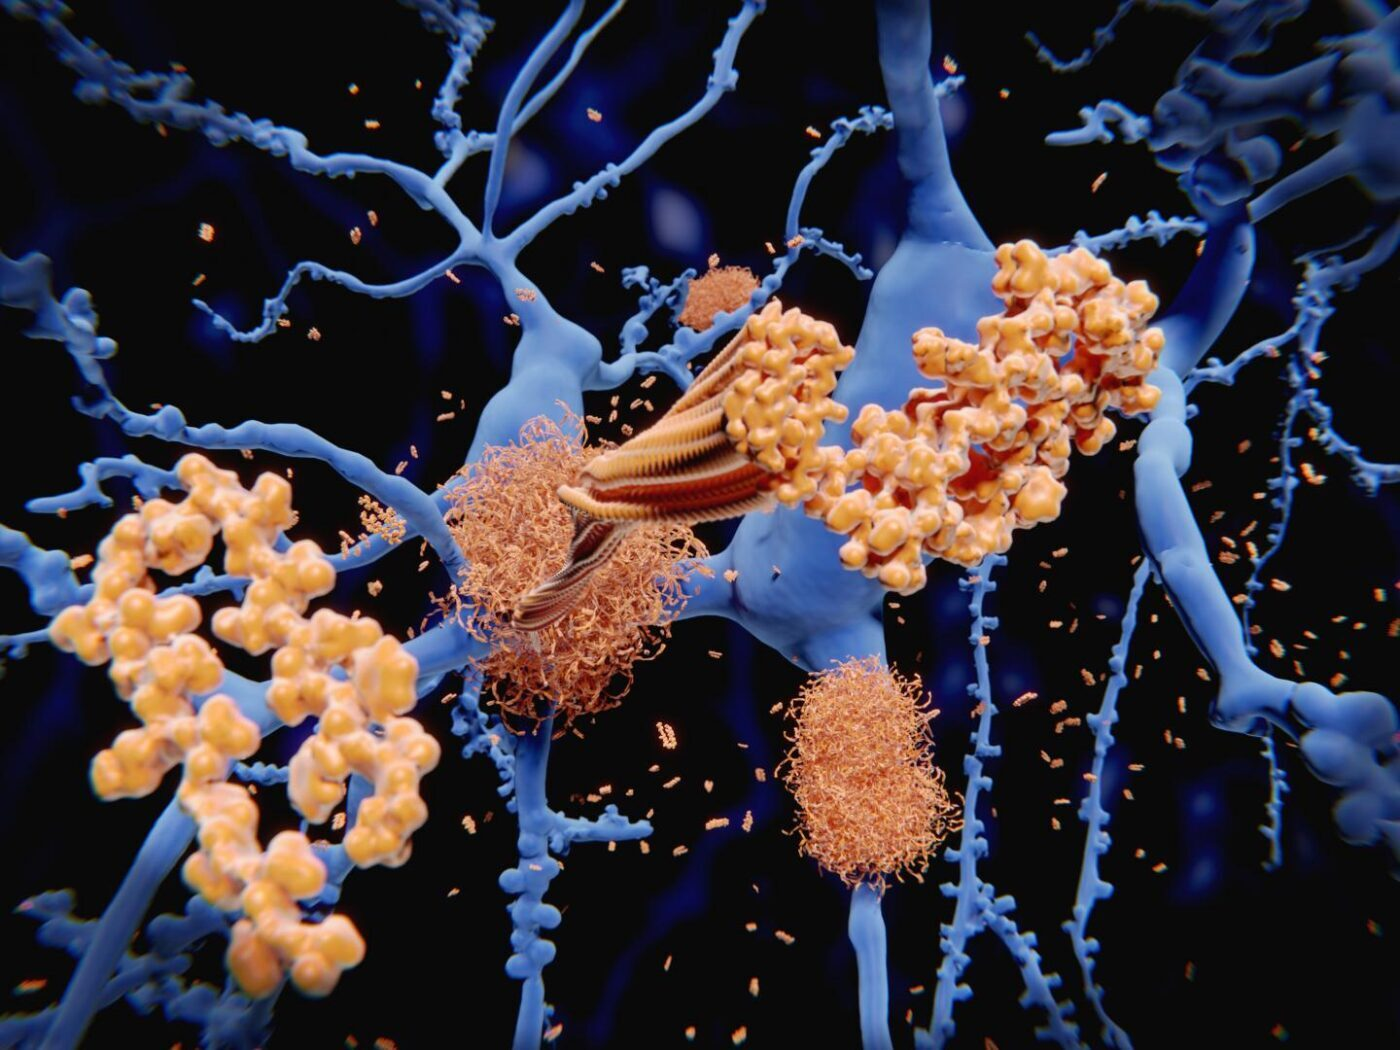 Study Identifies Cytokines That Predict Cognitive Trajectories in Older Adults